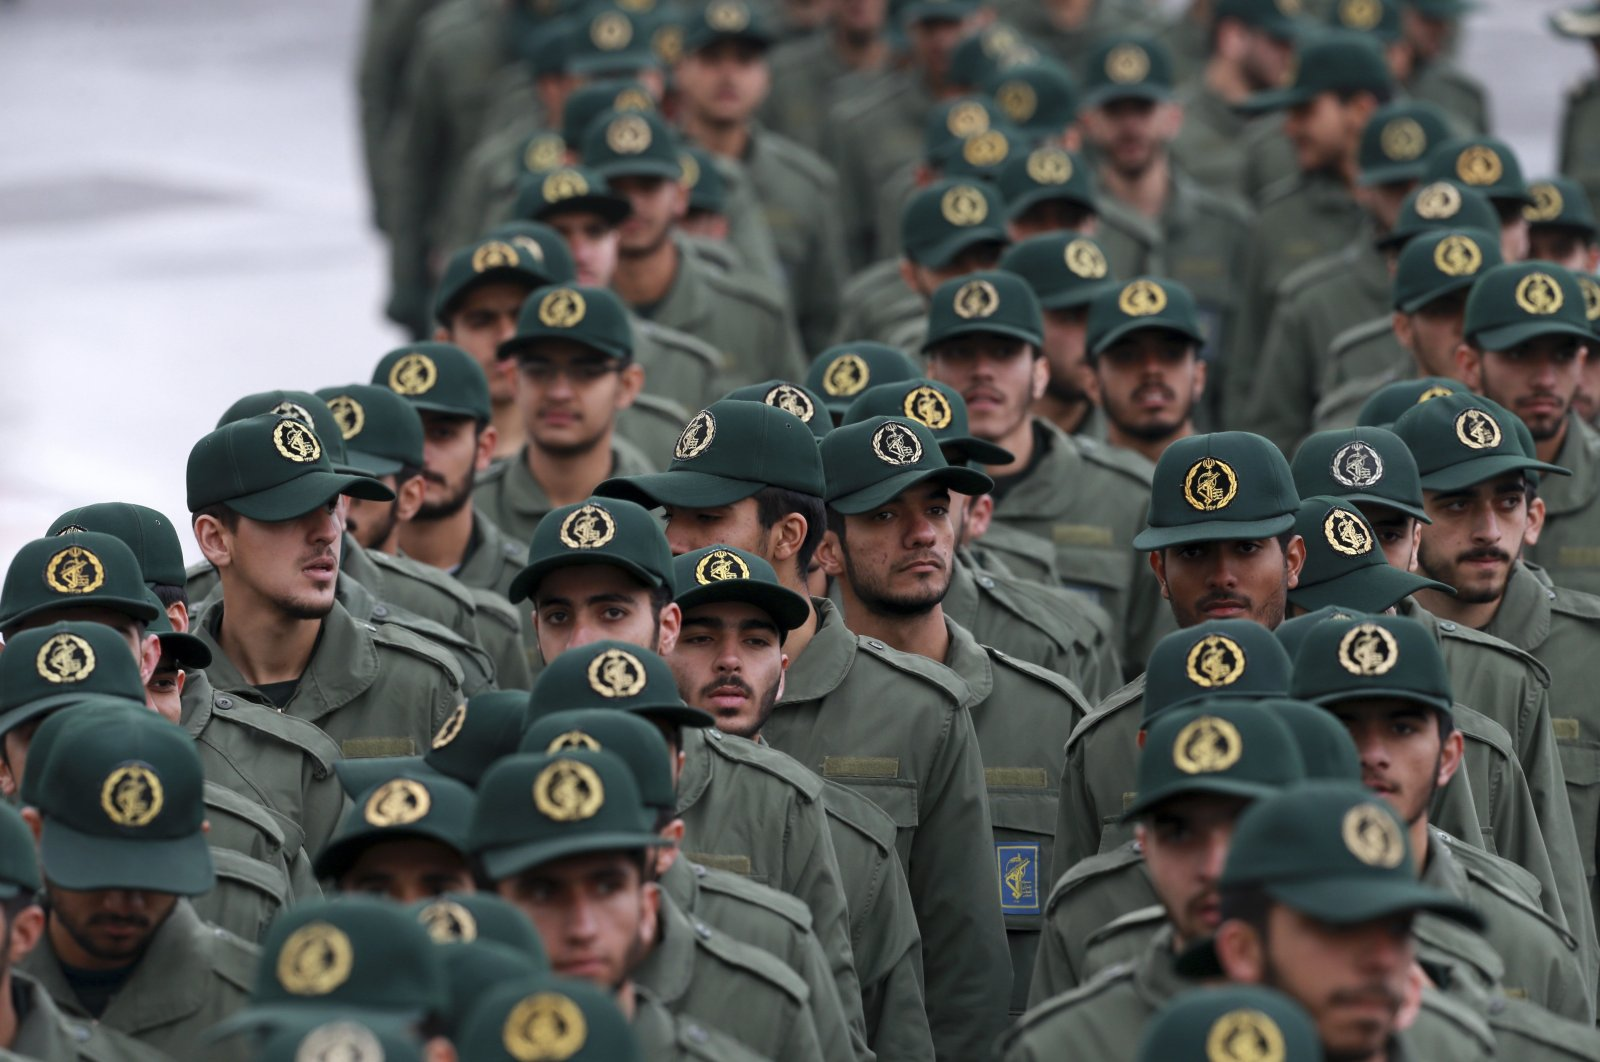 Iranian Revolutionary Guard members arrive for a ceremony celebrating the 40th anniversary of the Islamic Revolution, at the Azadi (Freedom) Square, in Tehran, Iran, Feb. 11, 2019. (AP Photo)